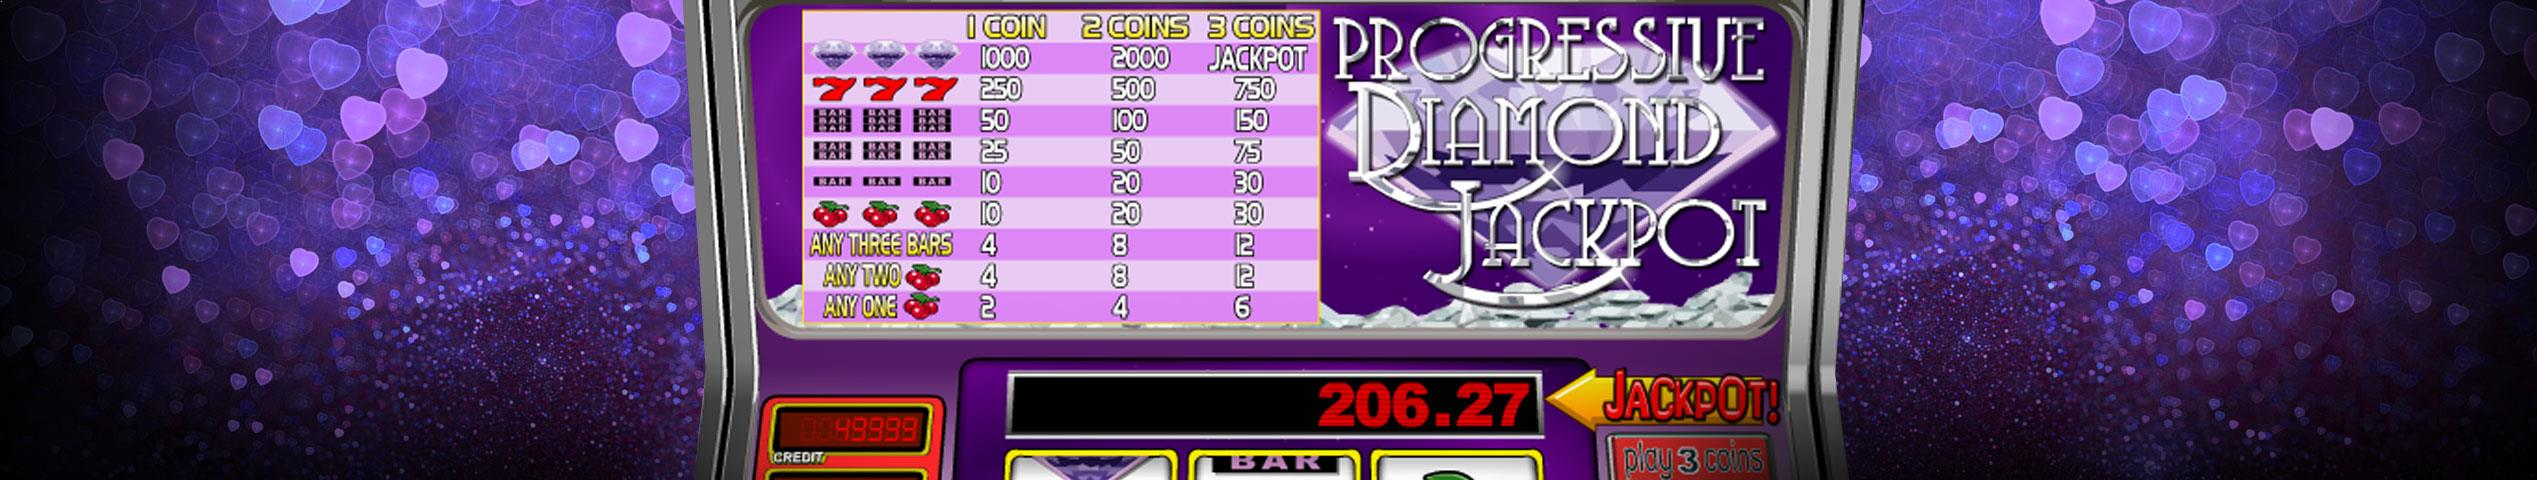 Diamond Progressive Multa Baft jocuri slot slider Betsoft